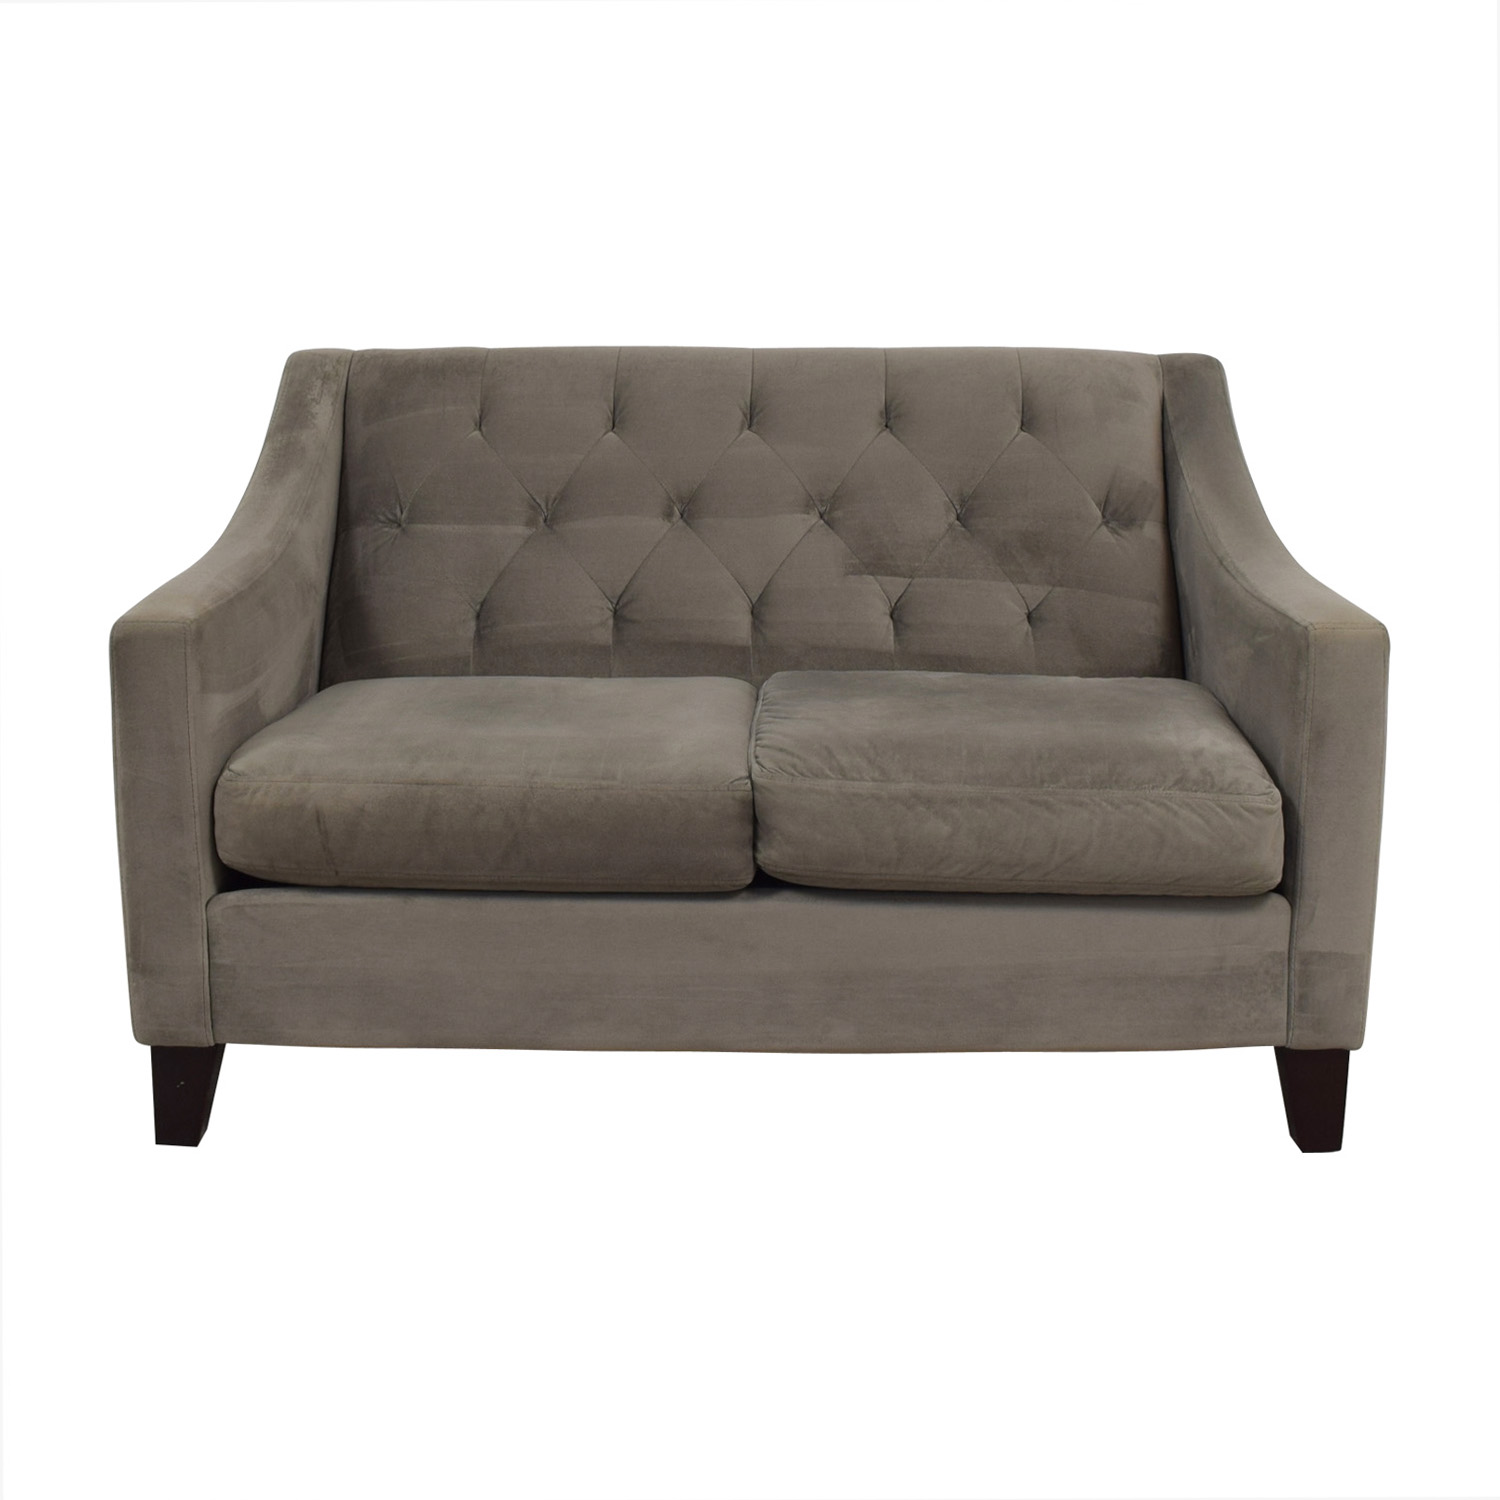 Max Home Grey Tufted Two-Cushion Love Seat Max Home